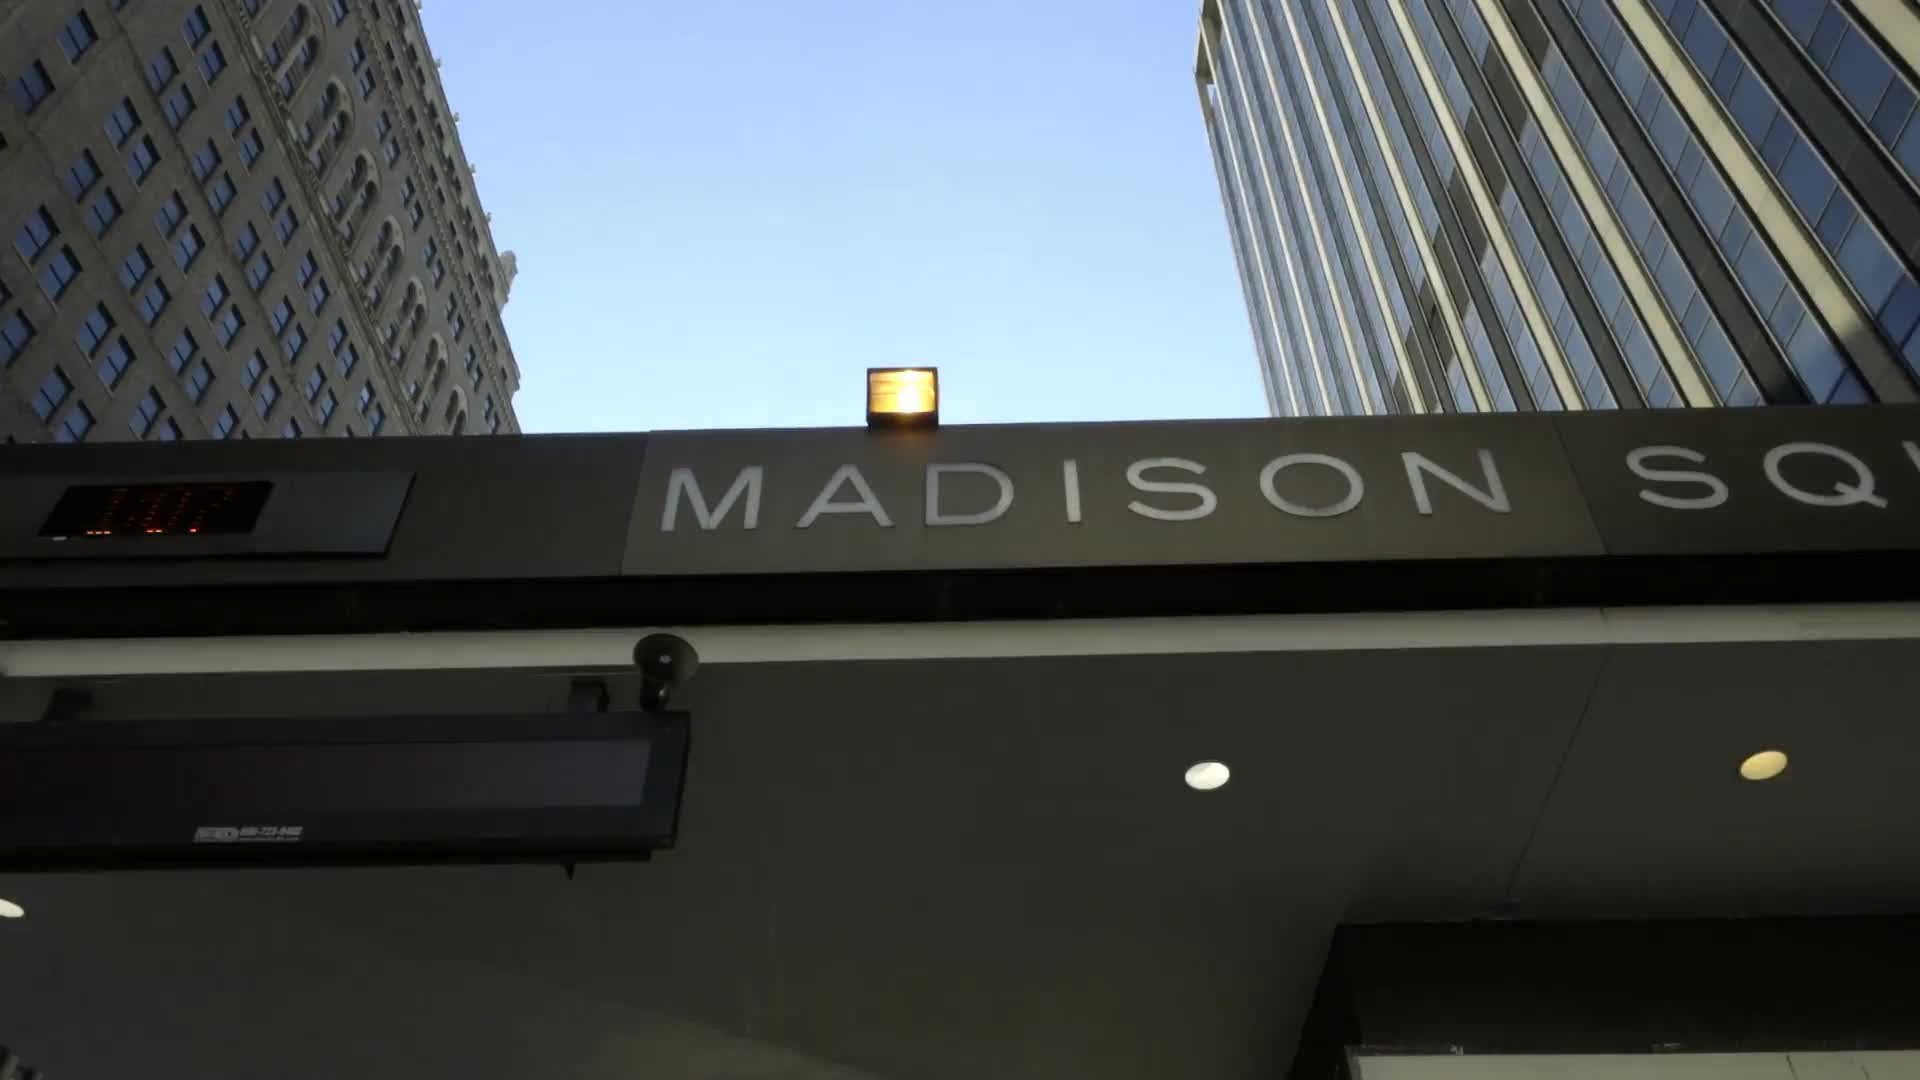 Madison Square Garden front entrance sign on canopy in NYC